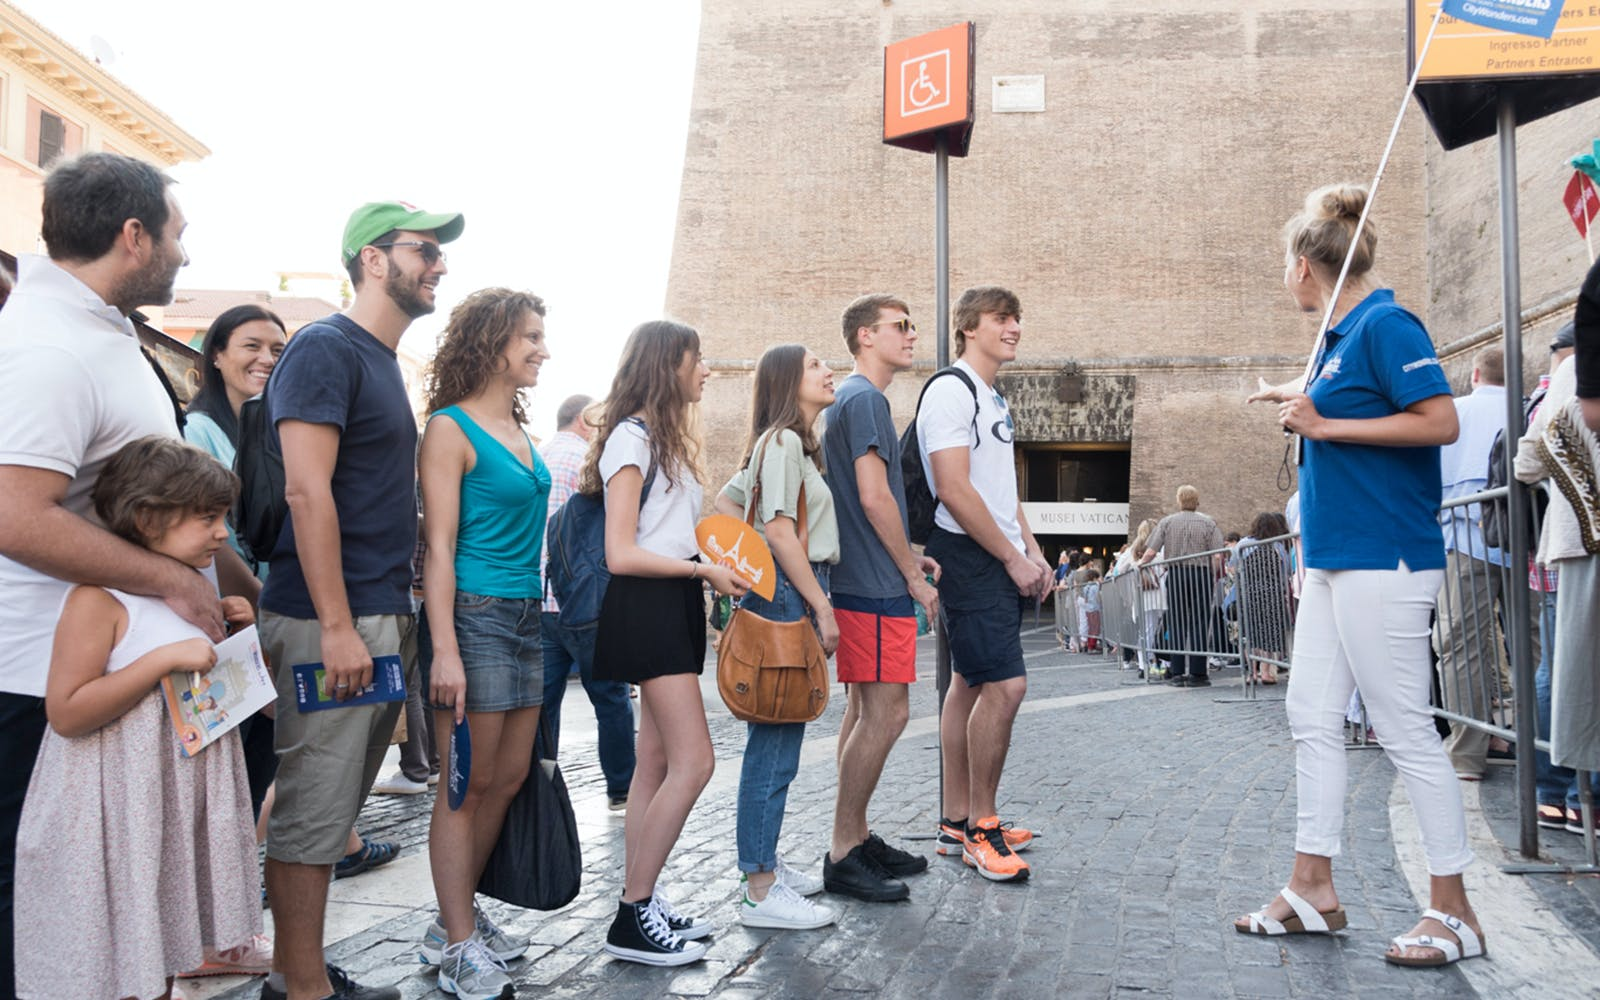 Full Day Guided Tour of Vatican and Colosseum